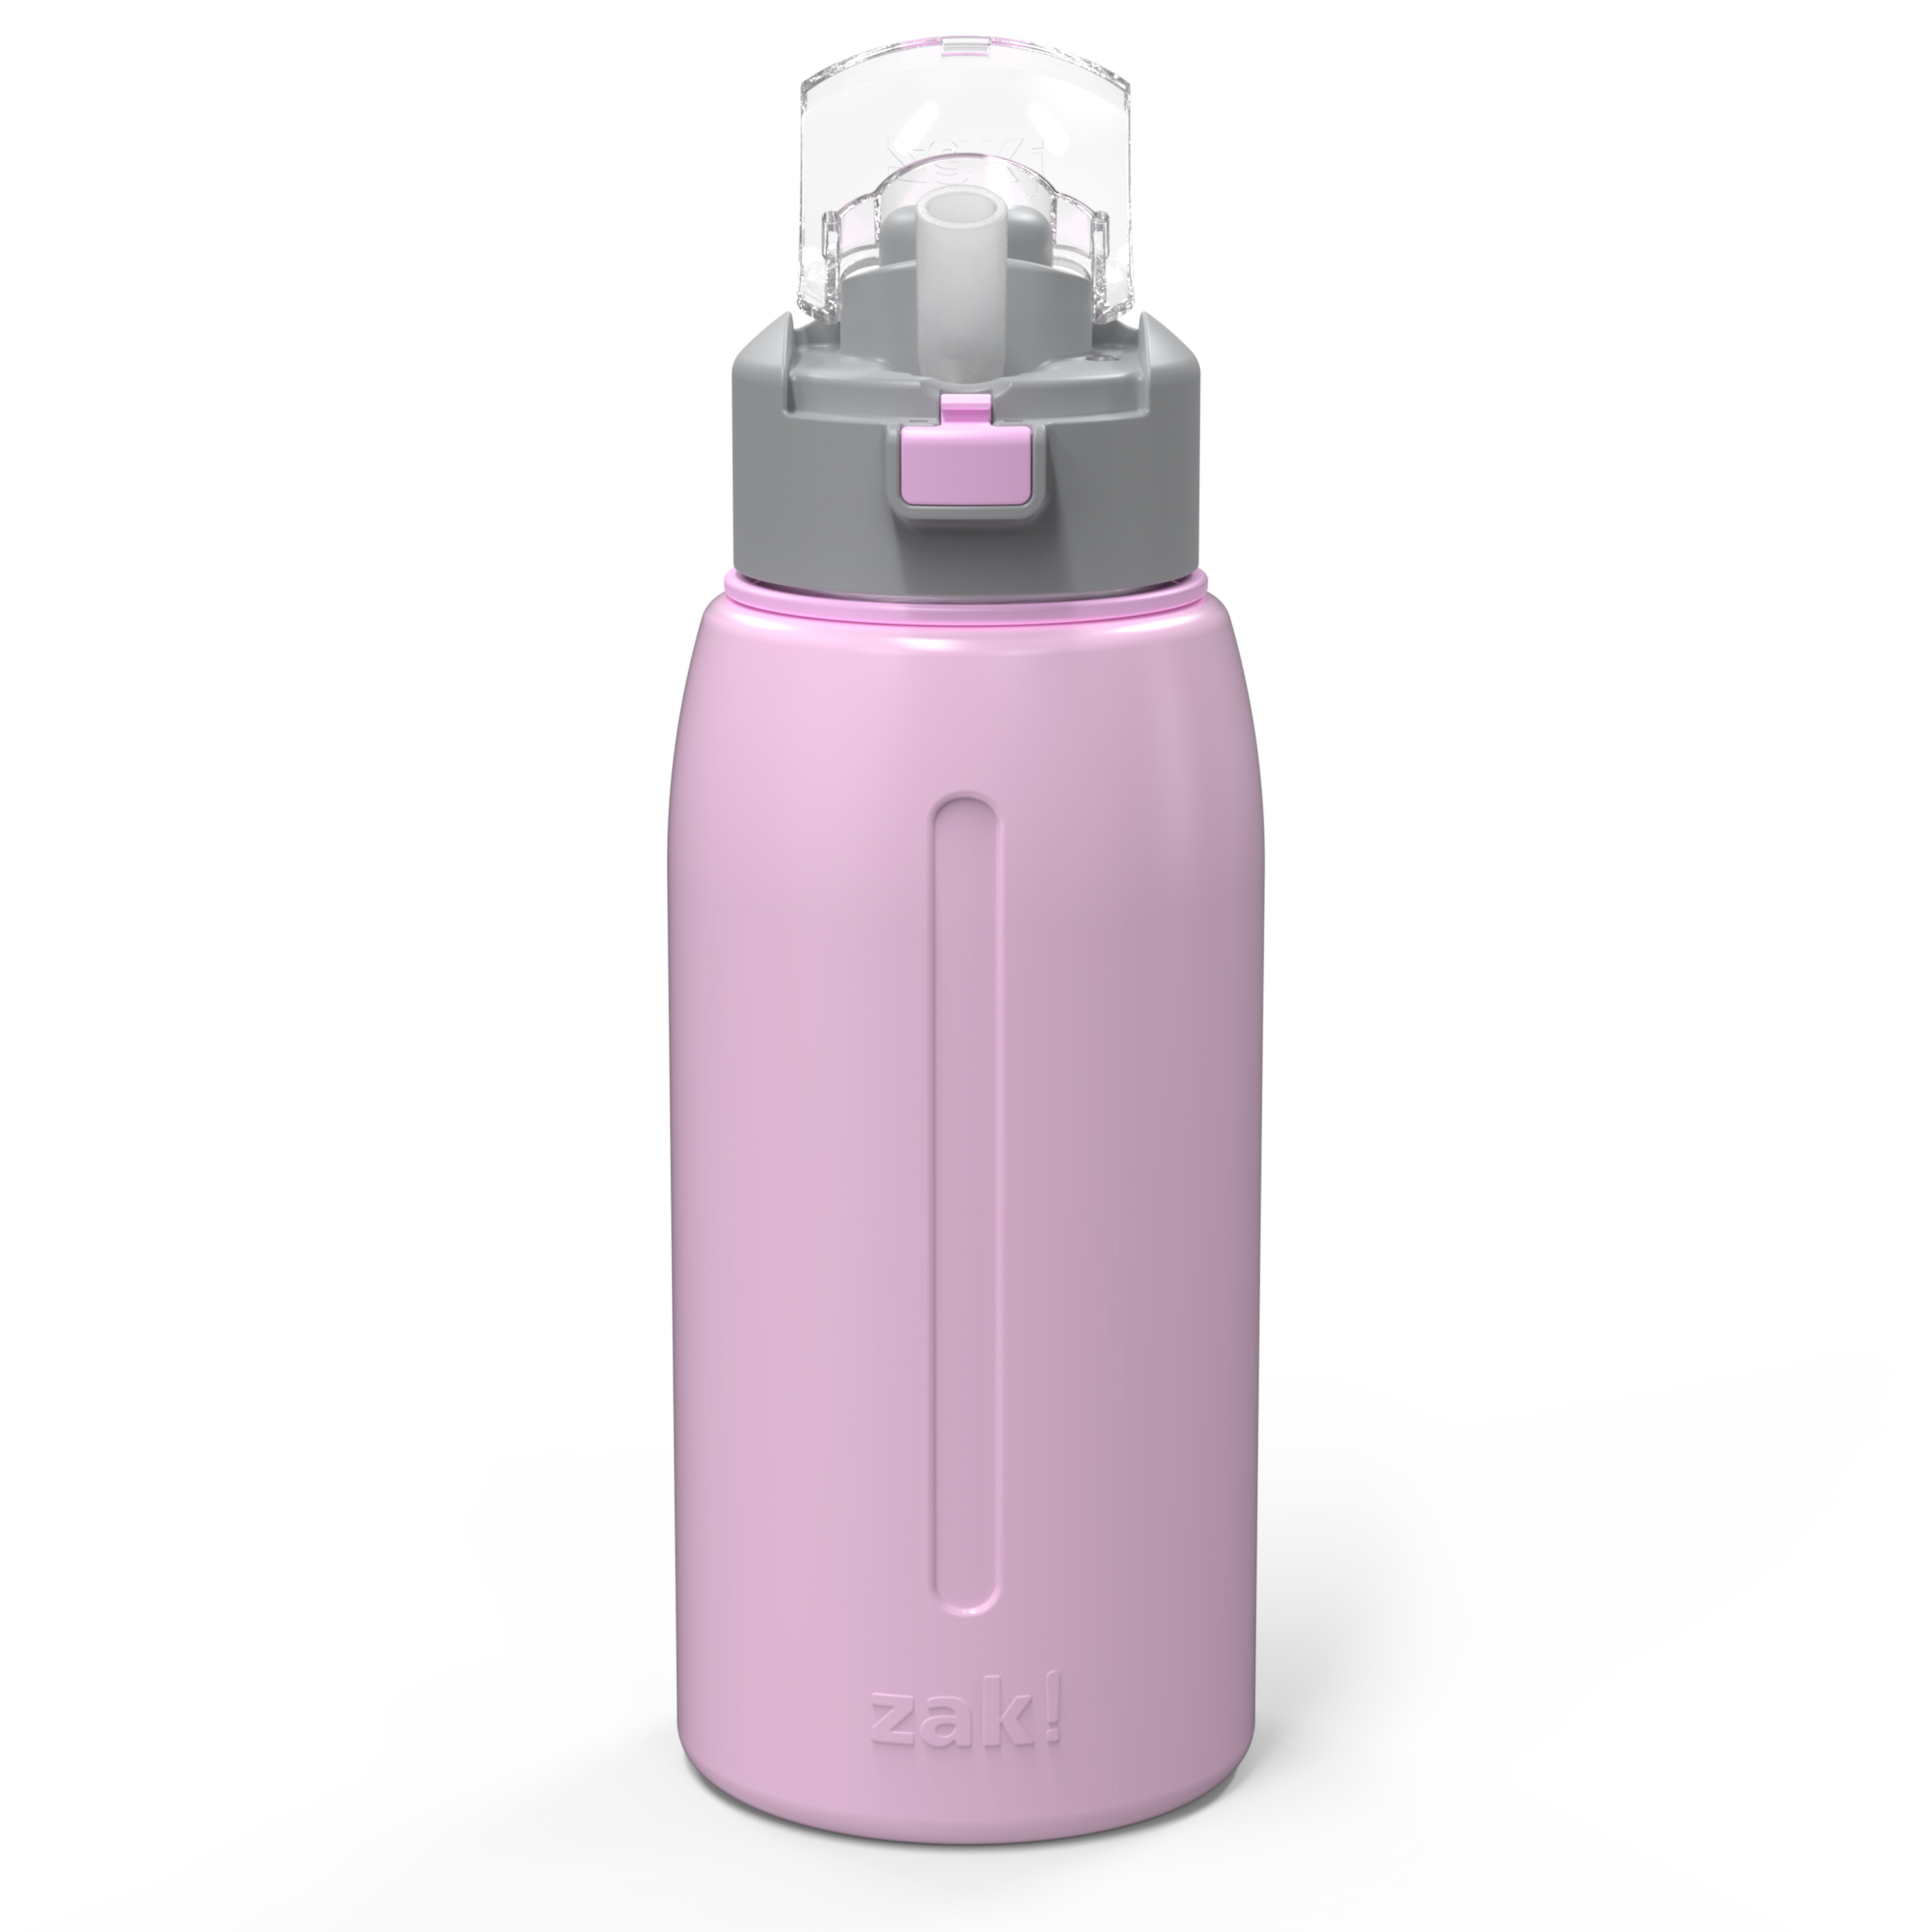 Genesis 32 ounce Vacuum Insulated Stainless Steel Tumbler, Lilac slideshow image 5